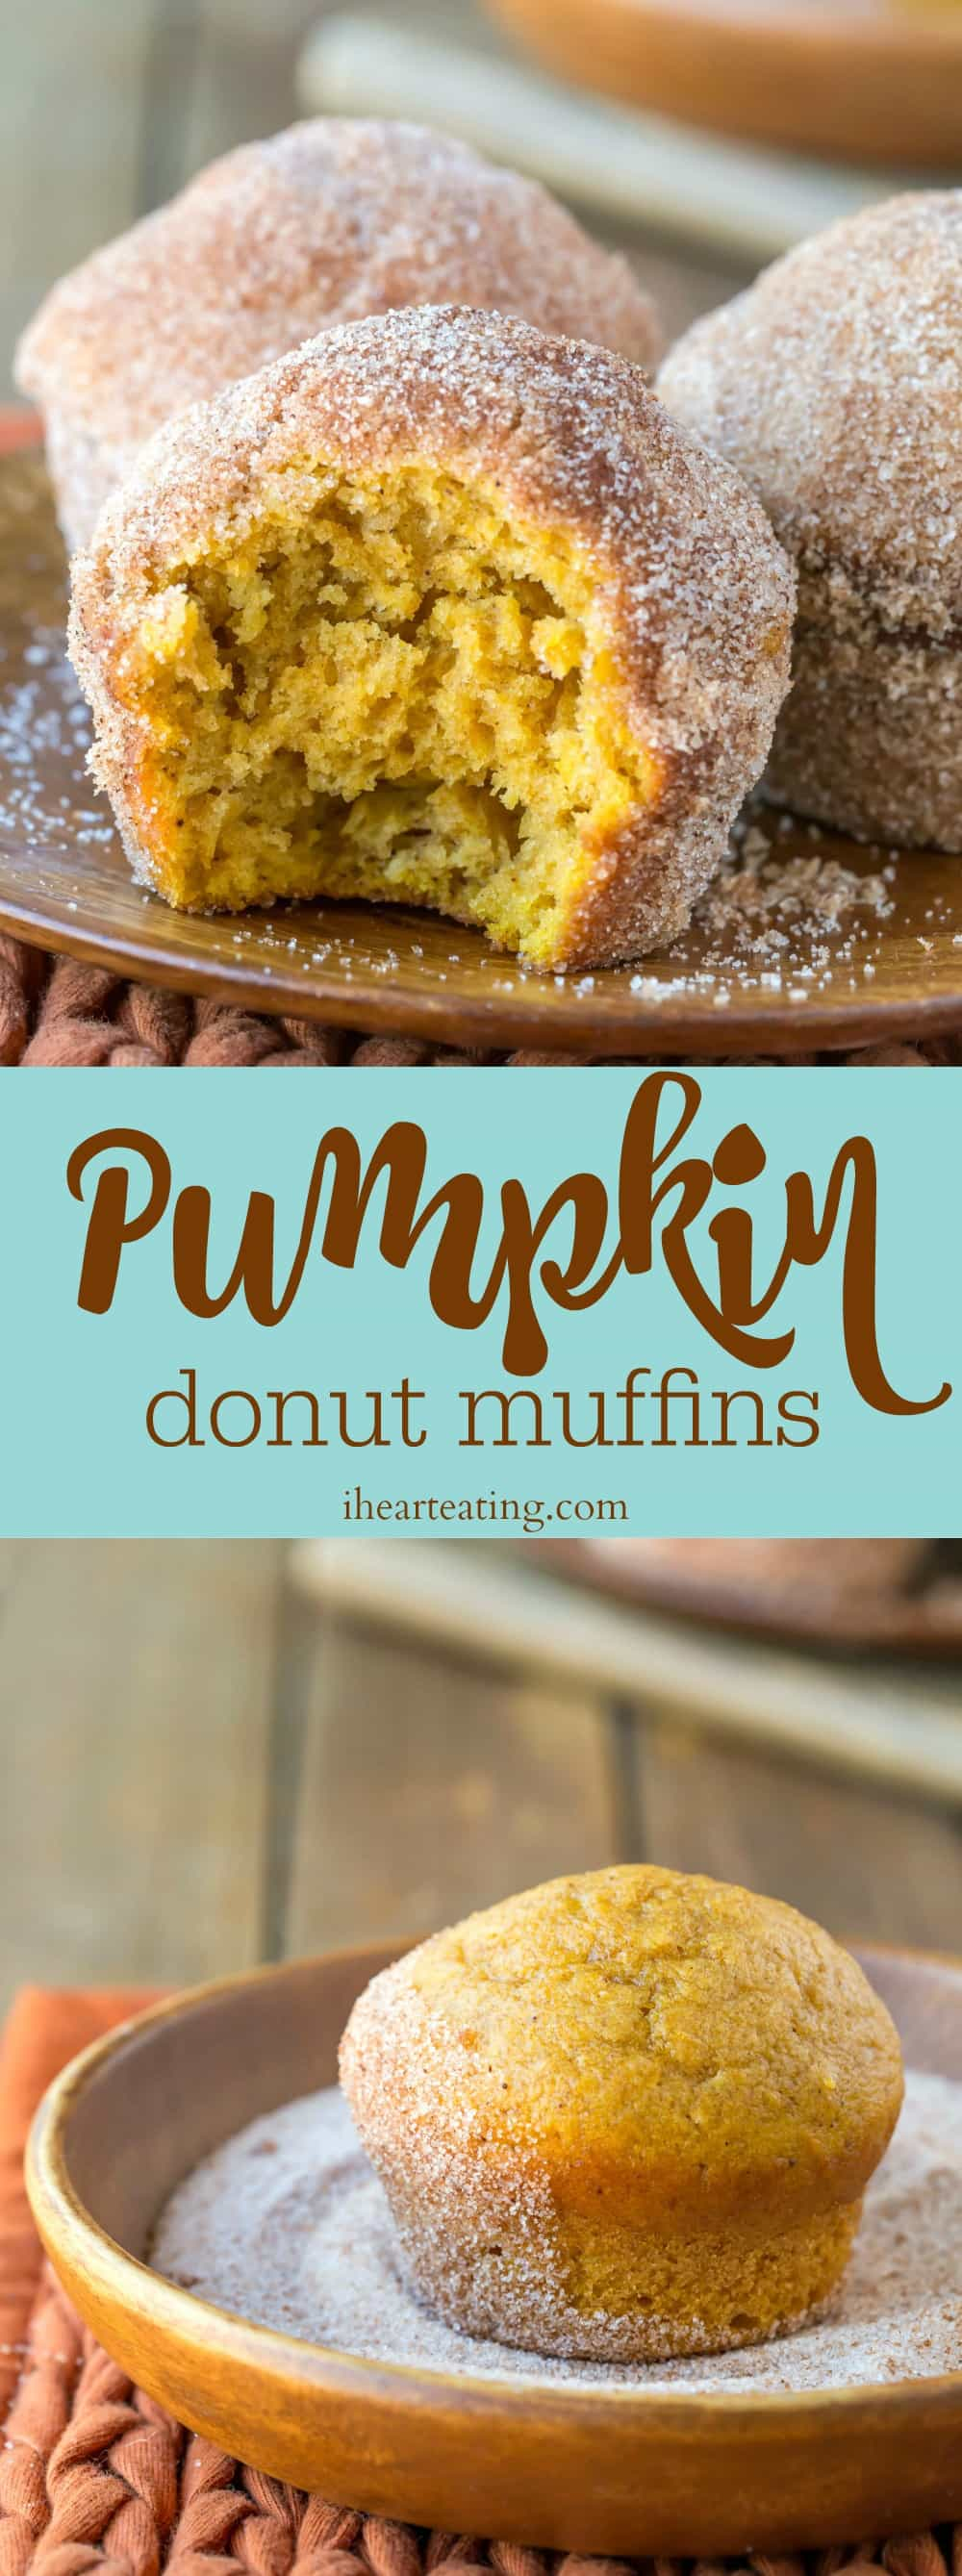 Pumpkin Donut Muffin Recipe